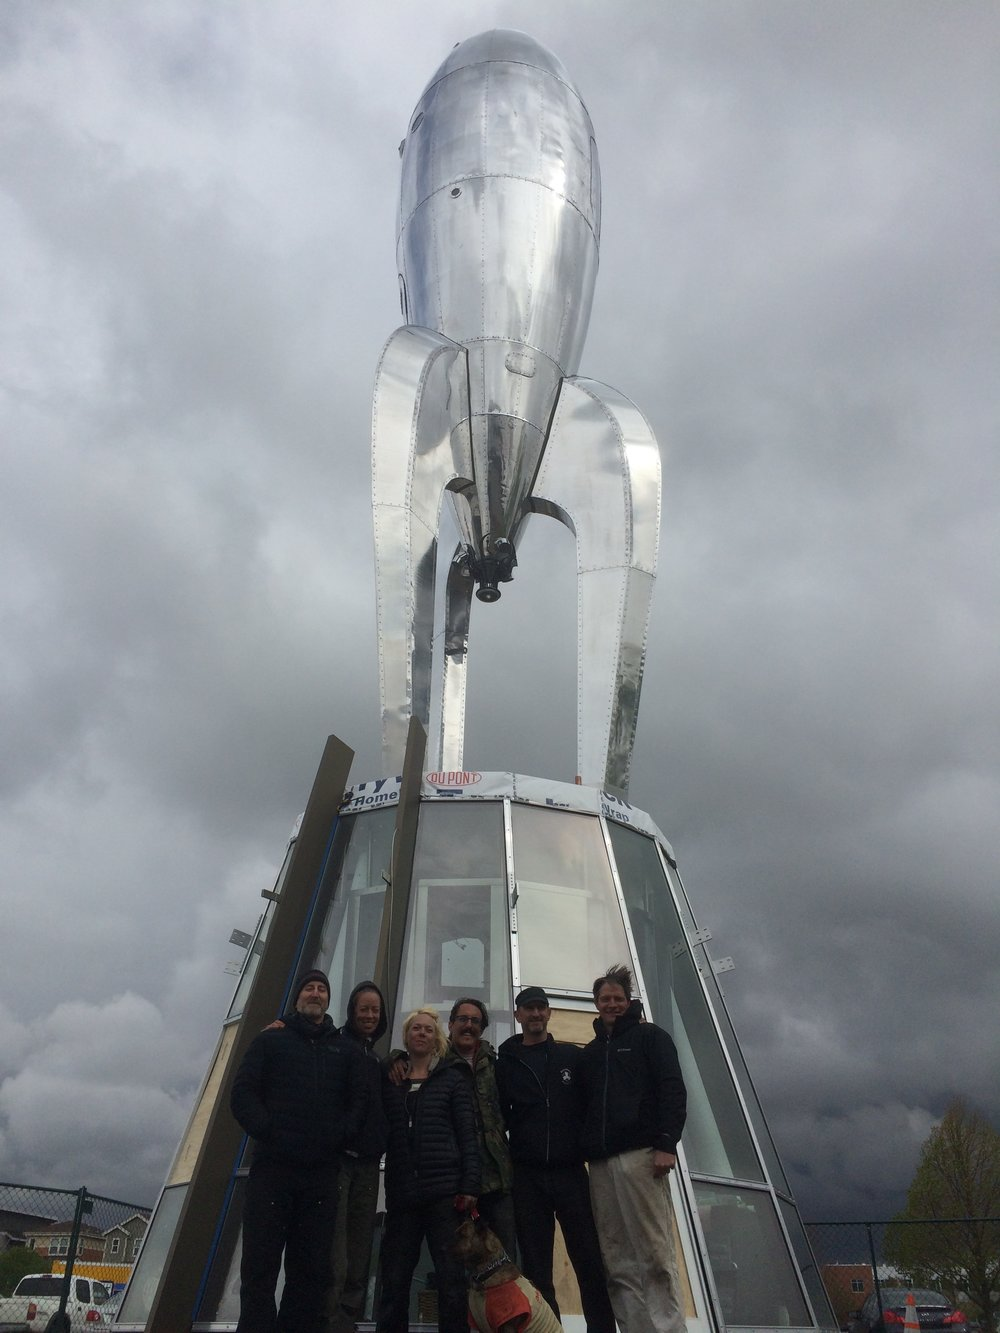 Raygun Gothic Rocketship permanently installed in Denver, CO.